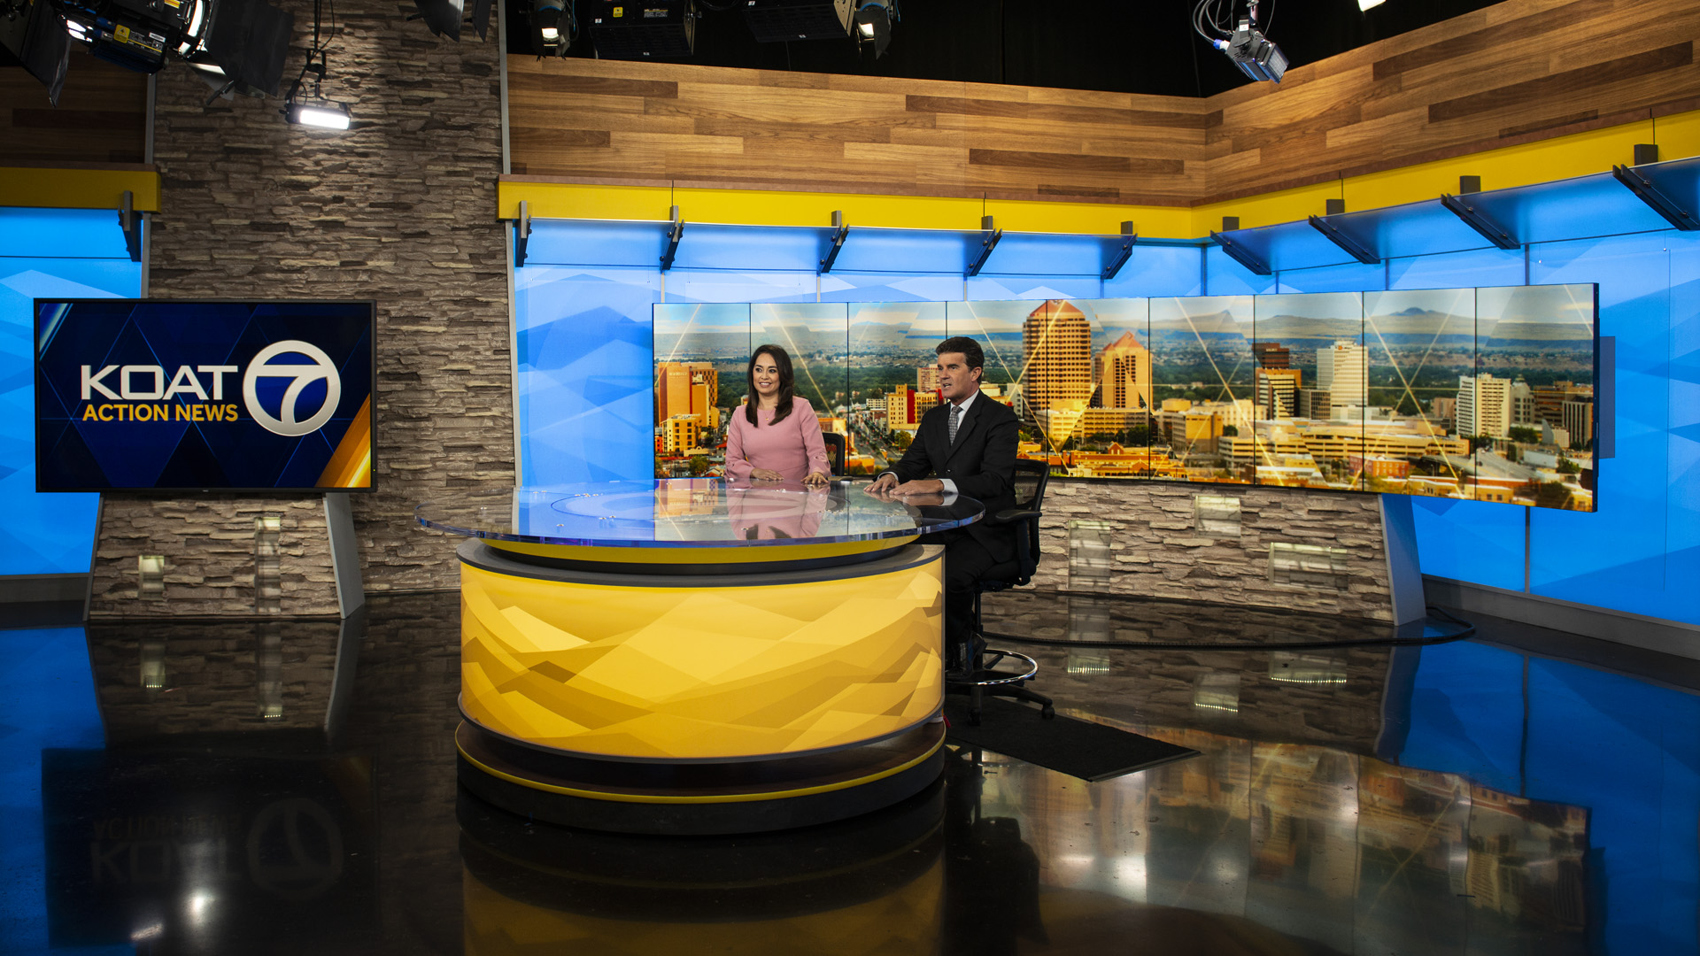 ncs_KOAT-TV-Studio-Devlin_00001